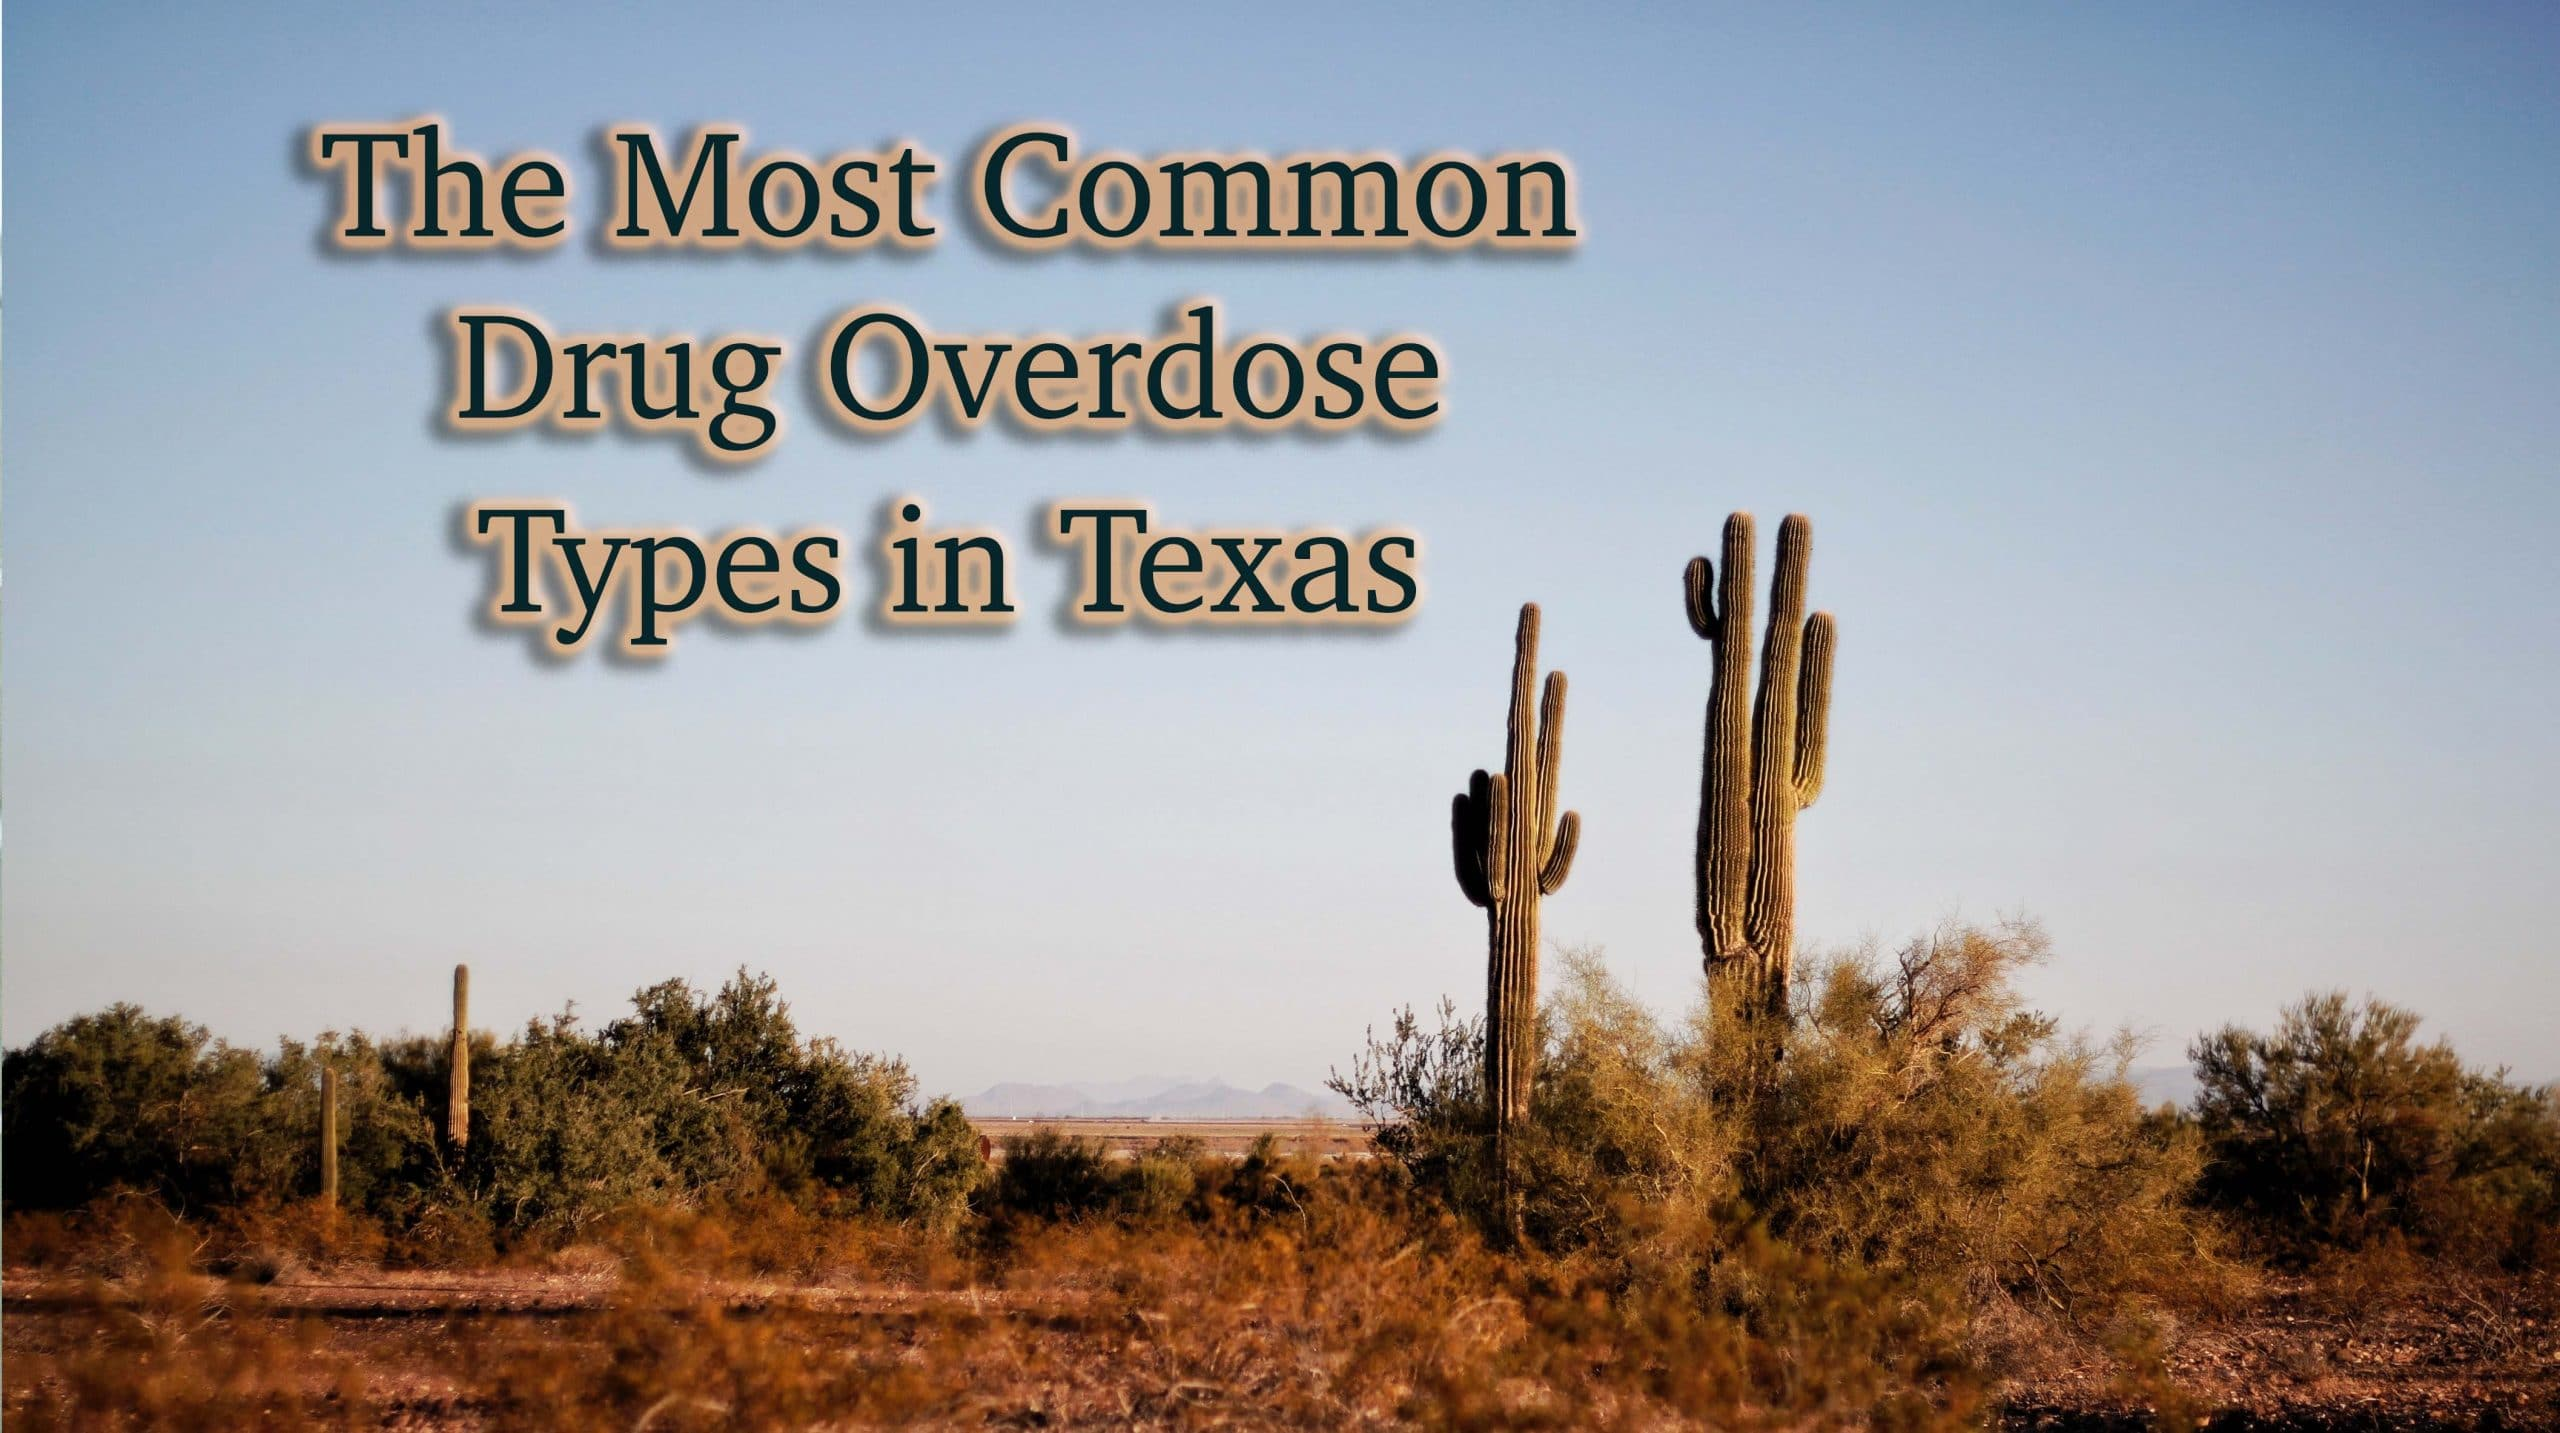 TX-drug-overdose-types-meth-cocaine-rehab